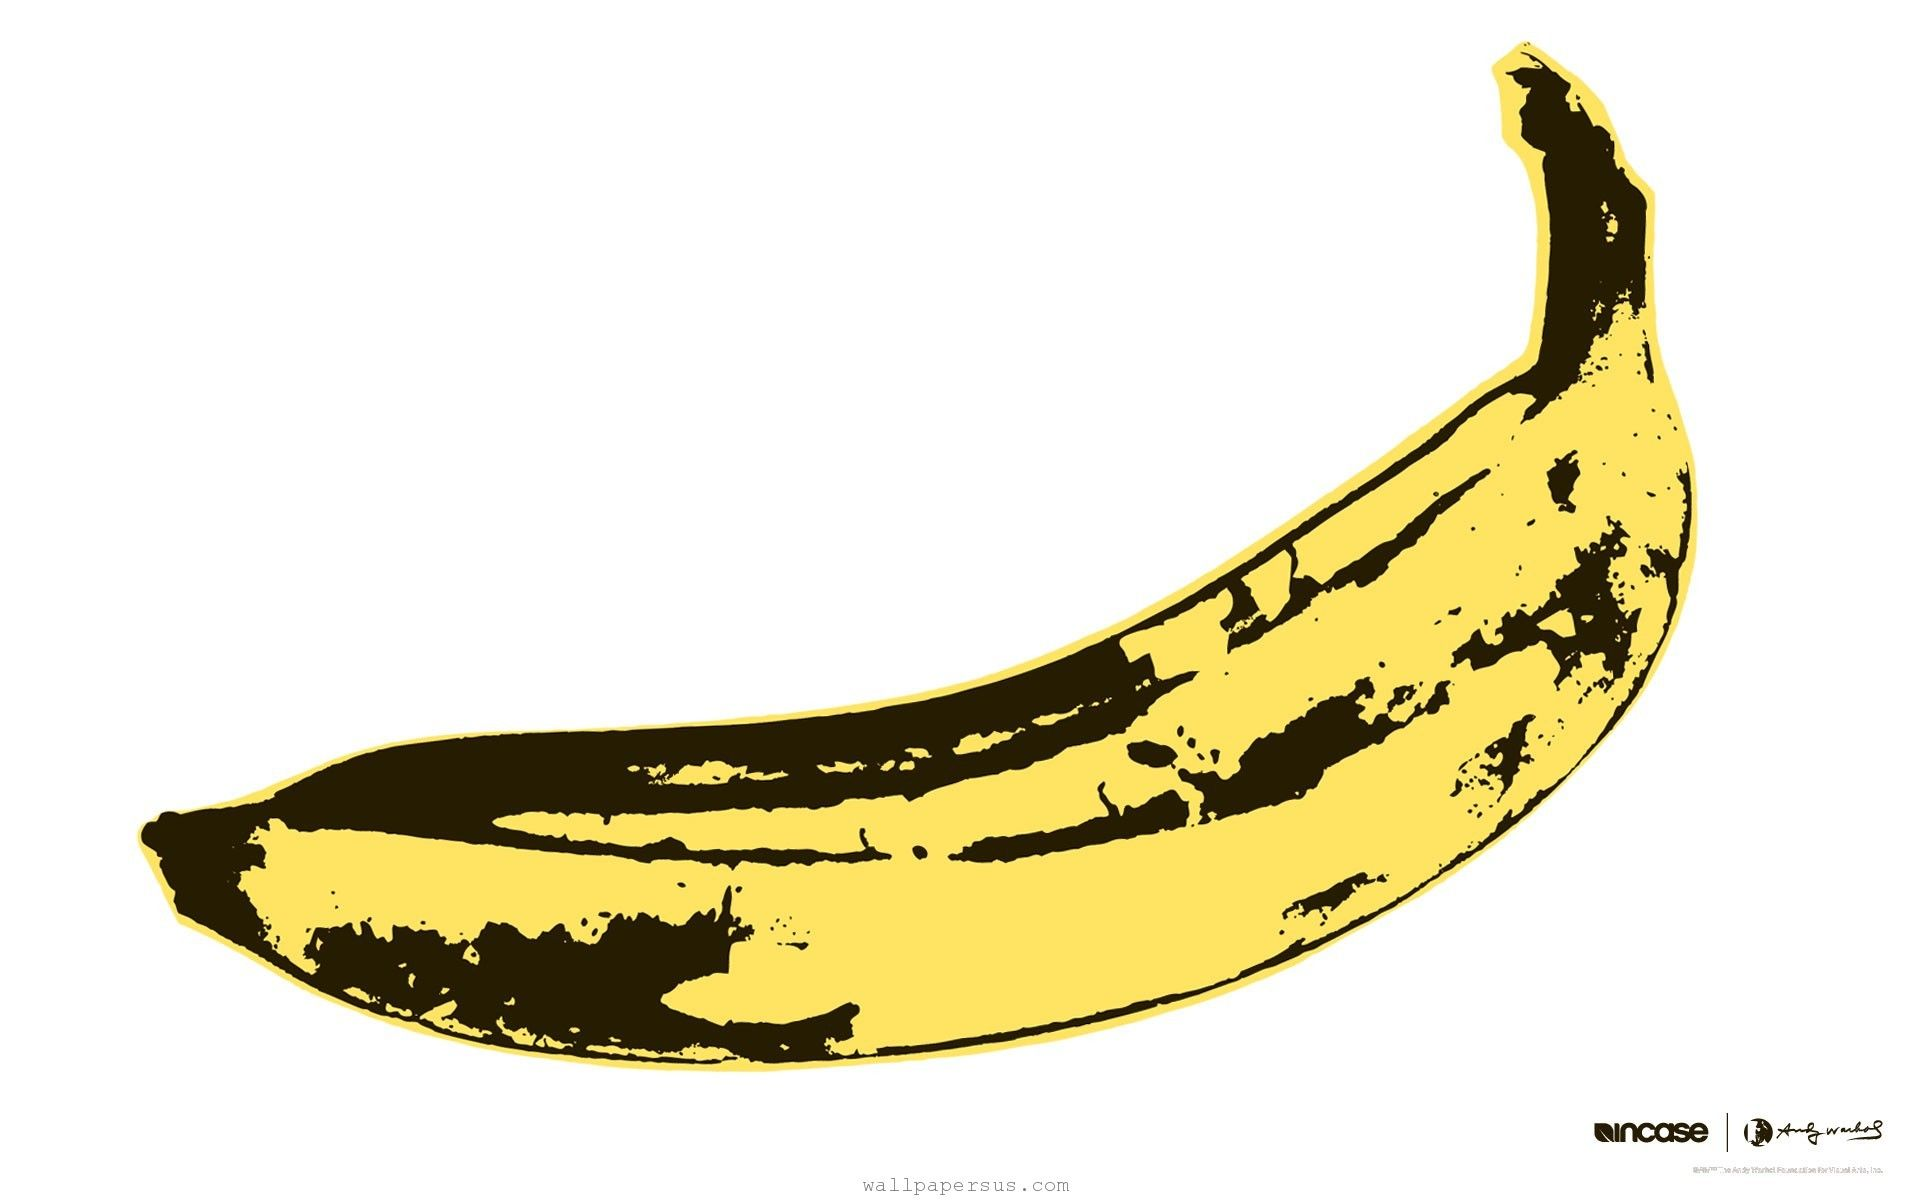 The Velvet Underground Andy Warhol Banana Andy Warhol Warhol